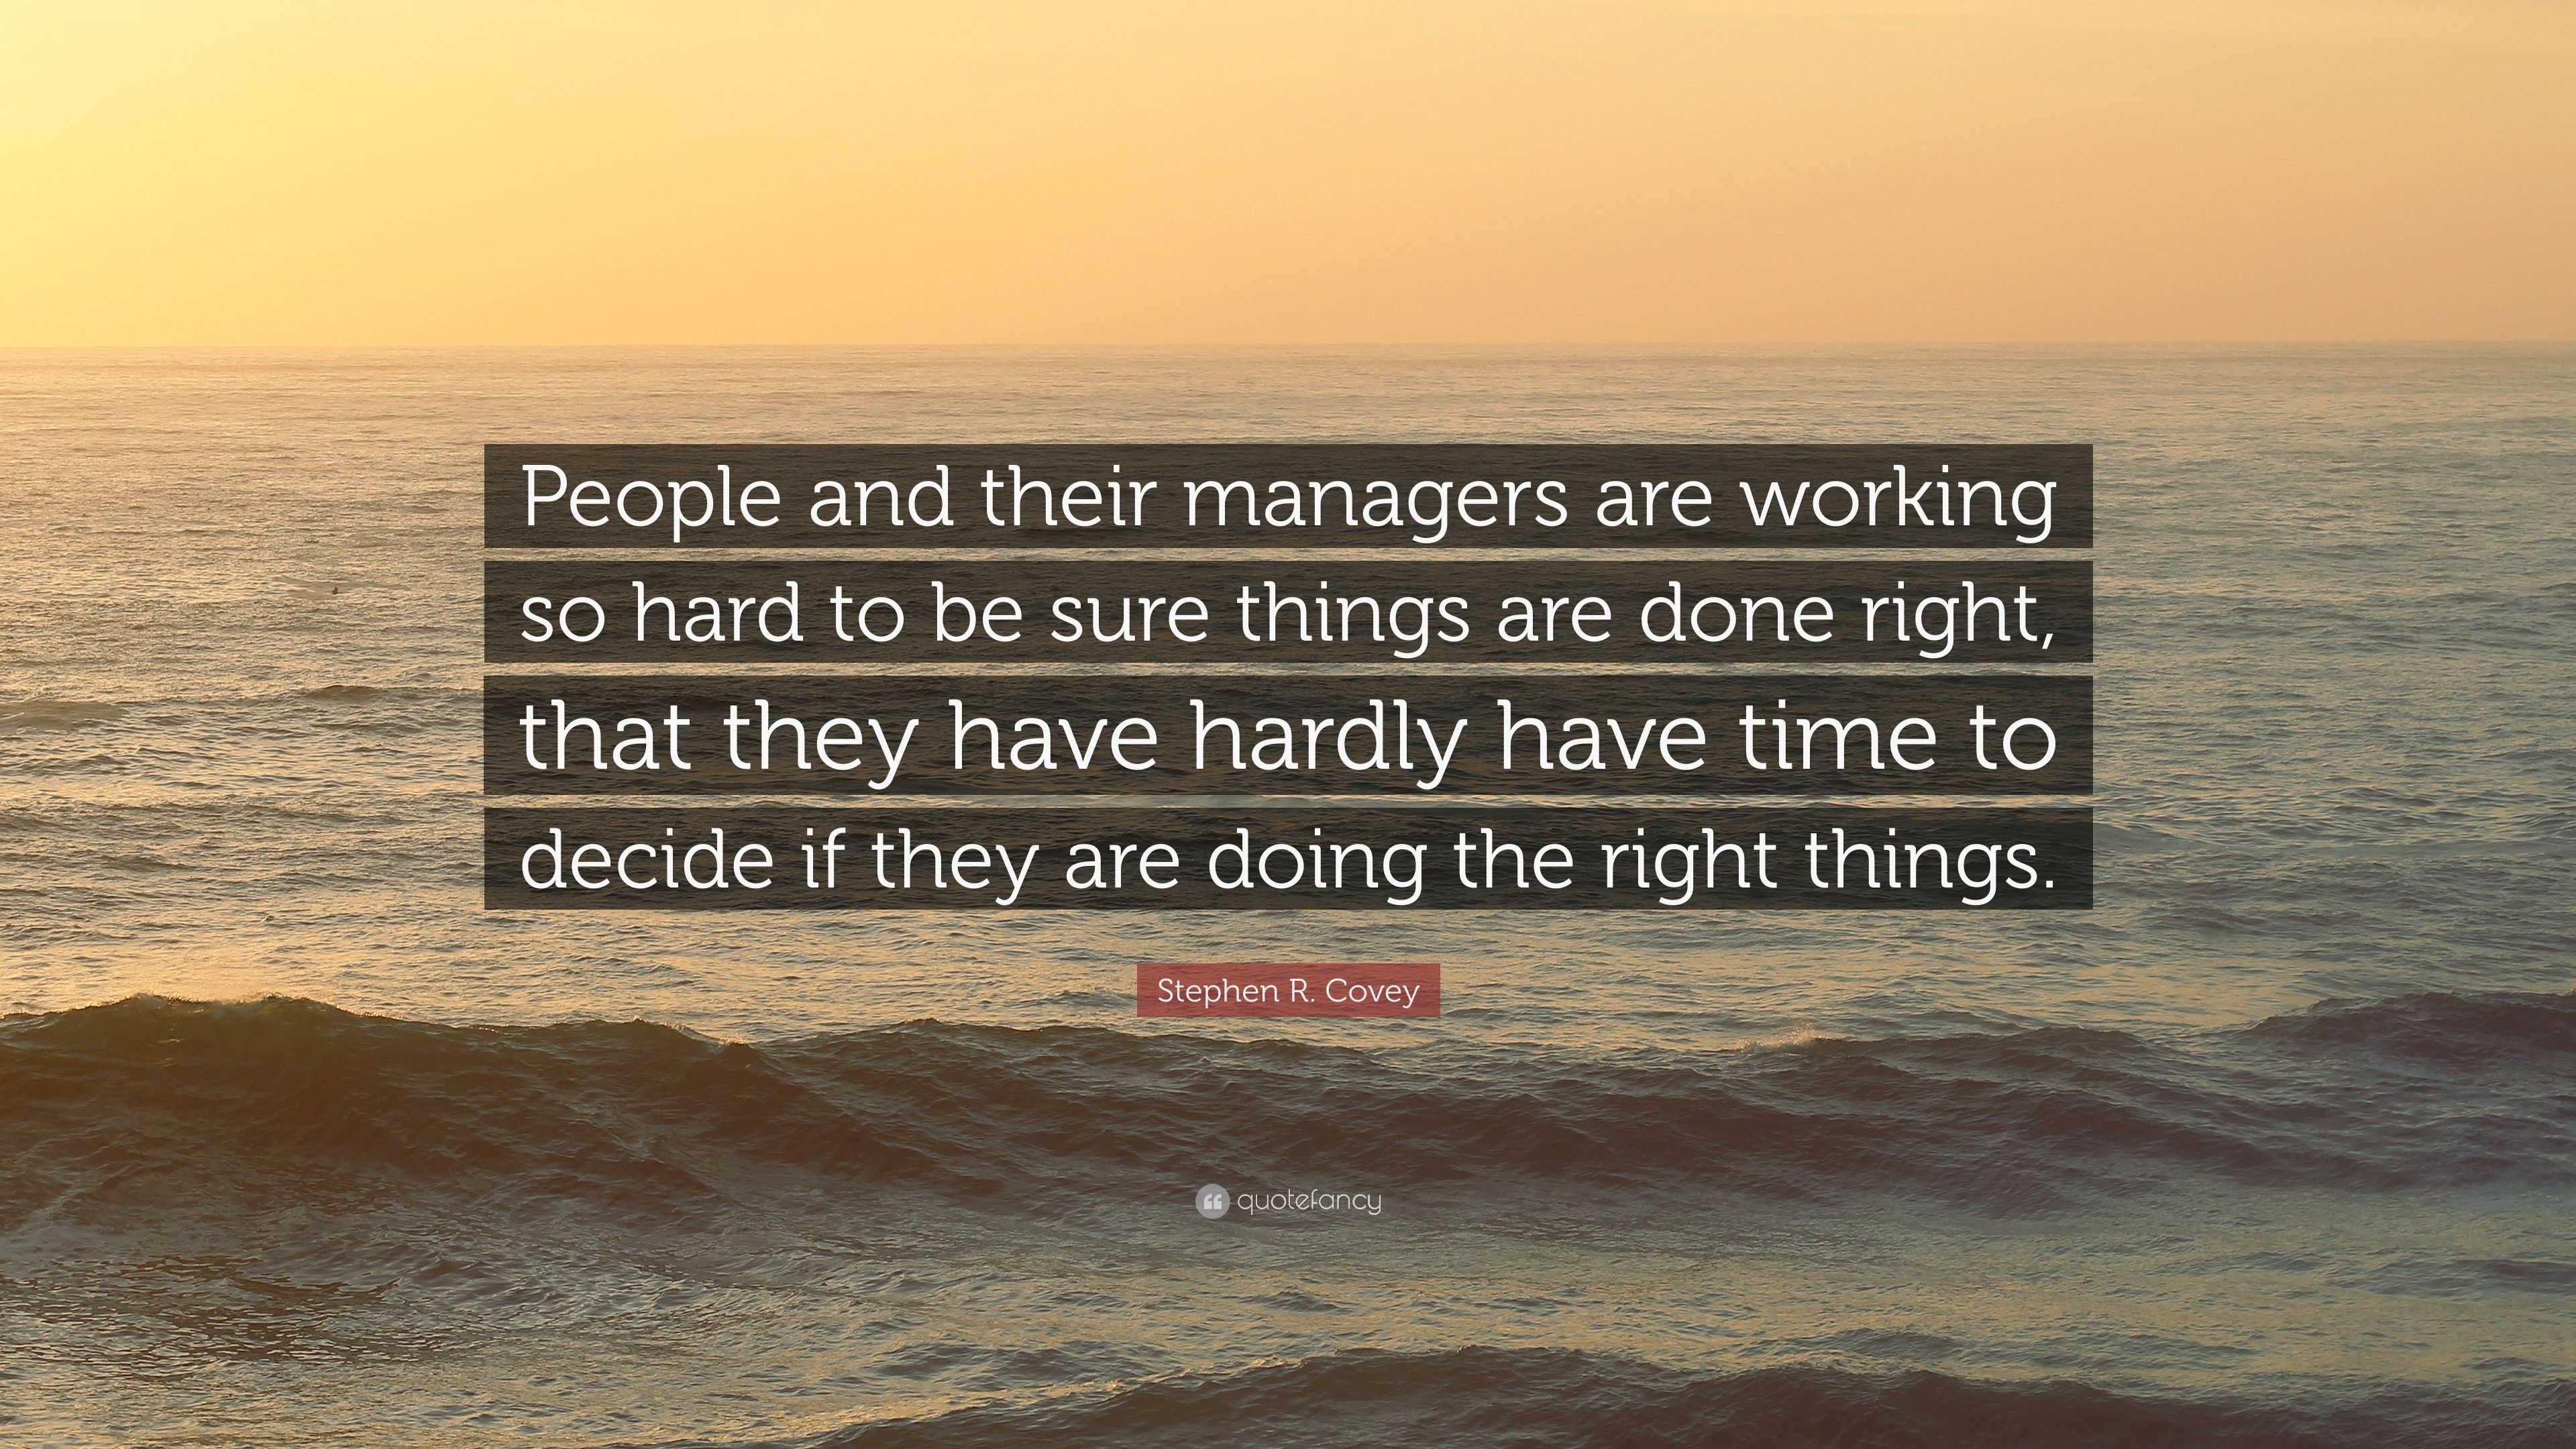 Stephen R Covey Quote People And Their Managers Are Working So